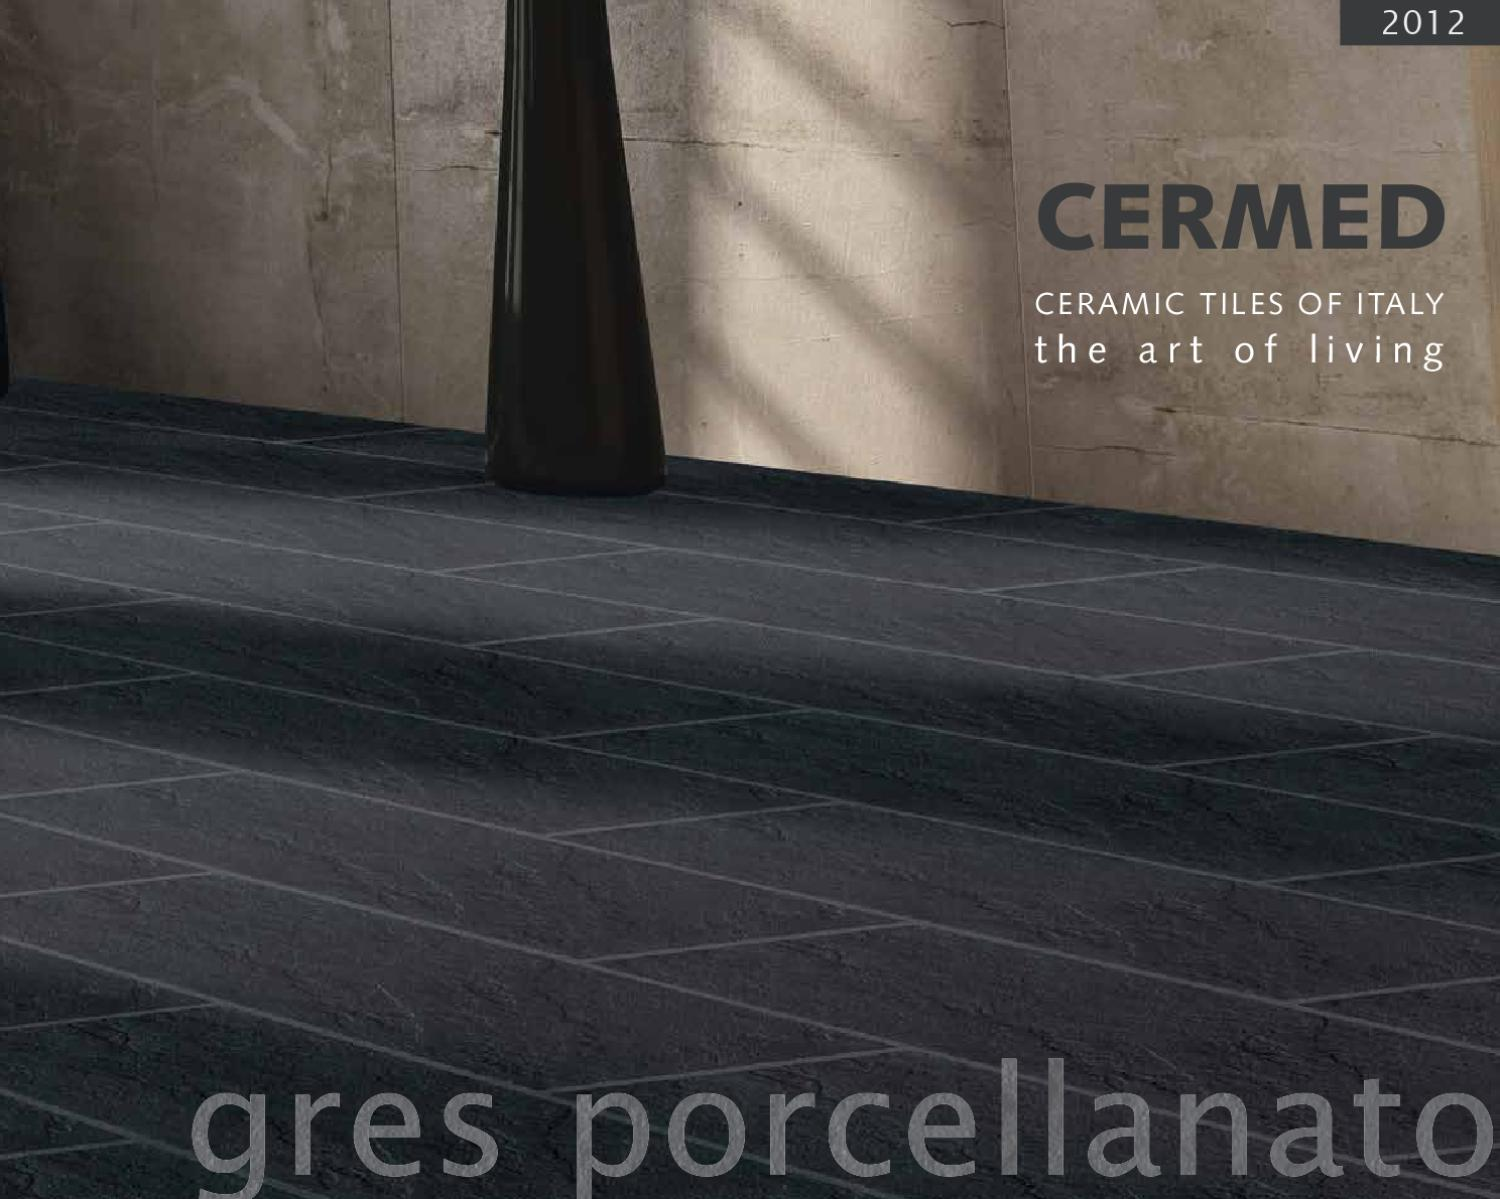 Cermed product catalog 2012 by werbelust issuu for Gres porcellanato carrelage